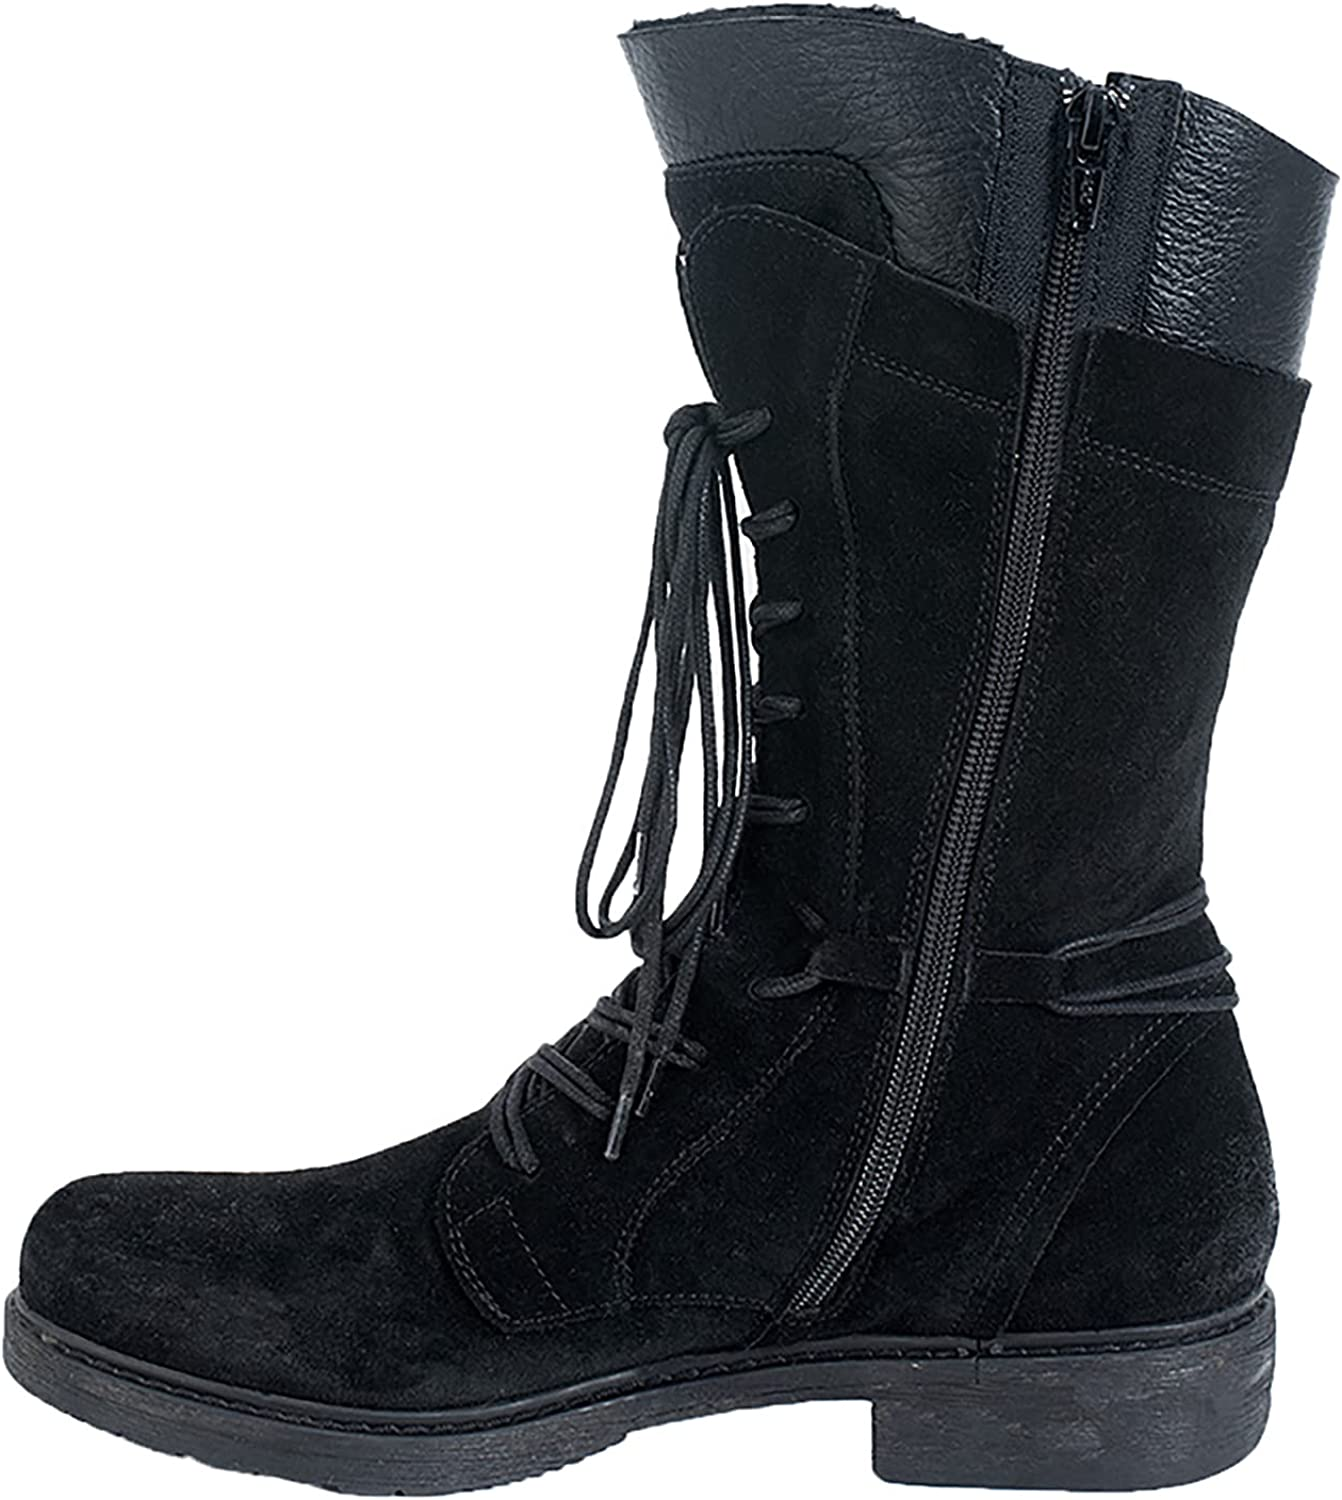 Women's Ankle Lace 5 Sales results No. 1 popular Up Military Combat Pu Mid Calf Booties Boots